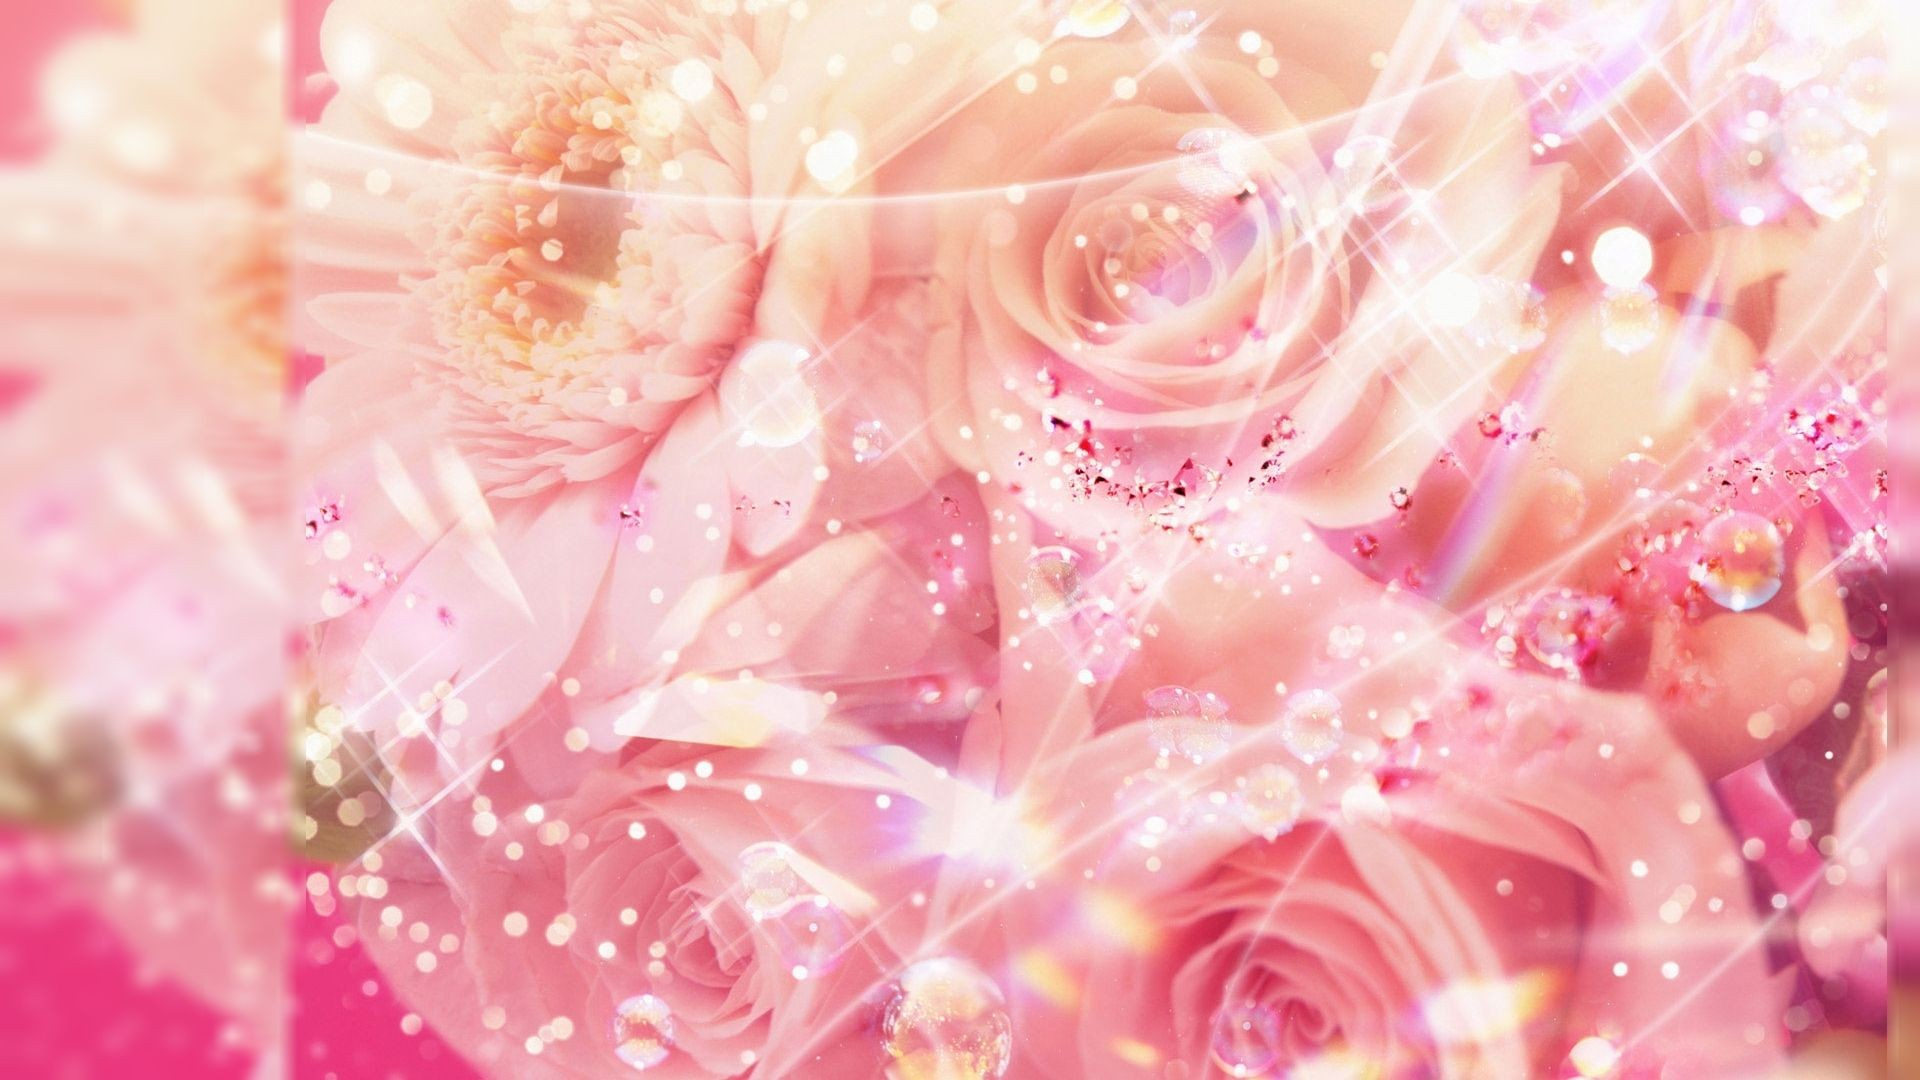 Amazing Girly Wallpapers For Windows 7   Src Amazing - Cute Girly Desktop Backgrounds - HD Wallpaper